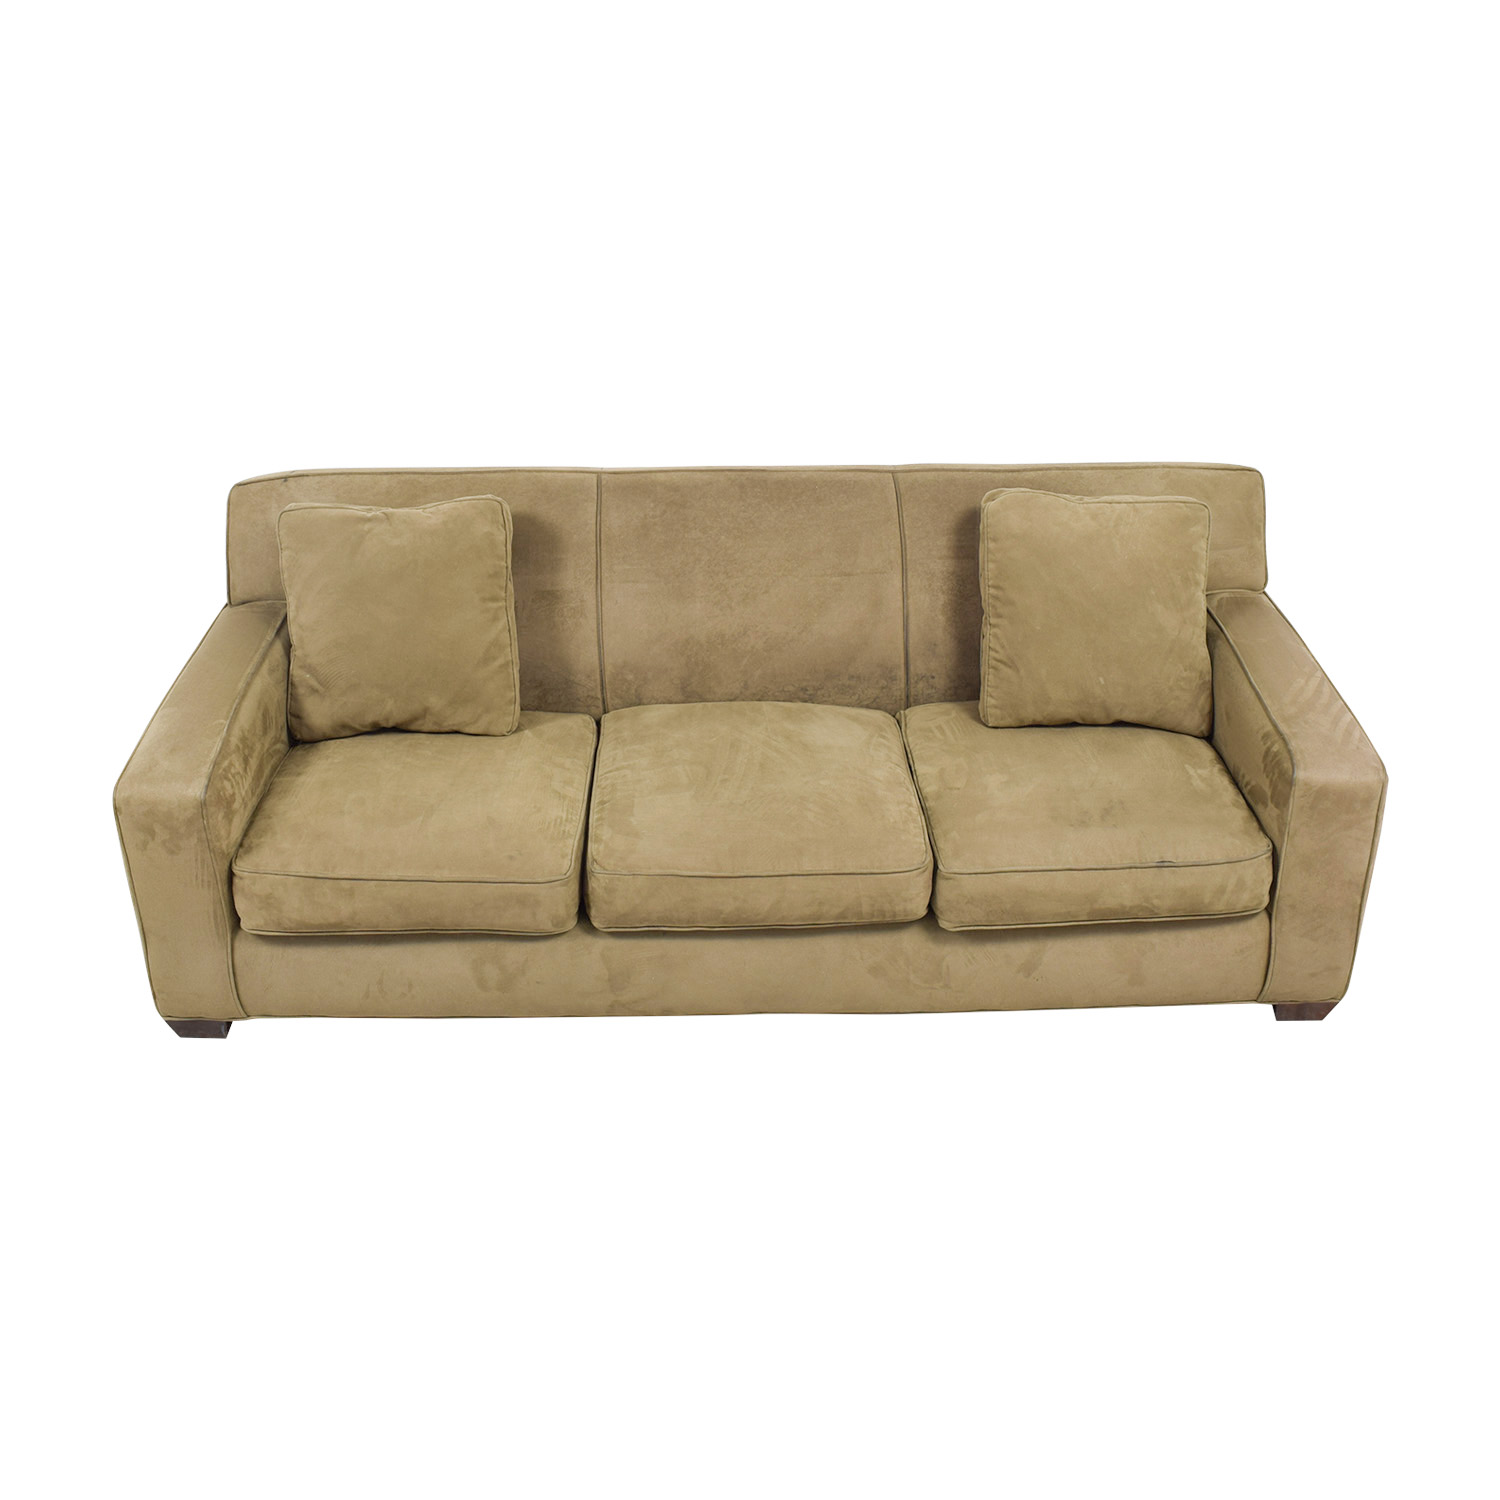 Crate Barrel Axis Ii Brown Three Cushion Sofa Online